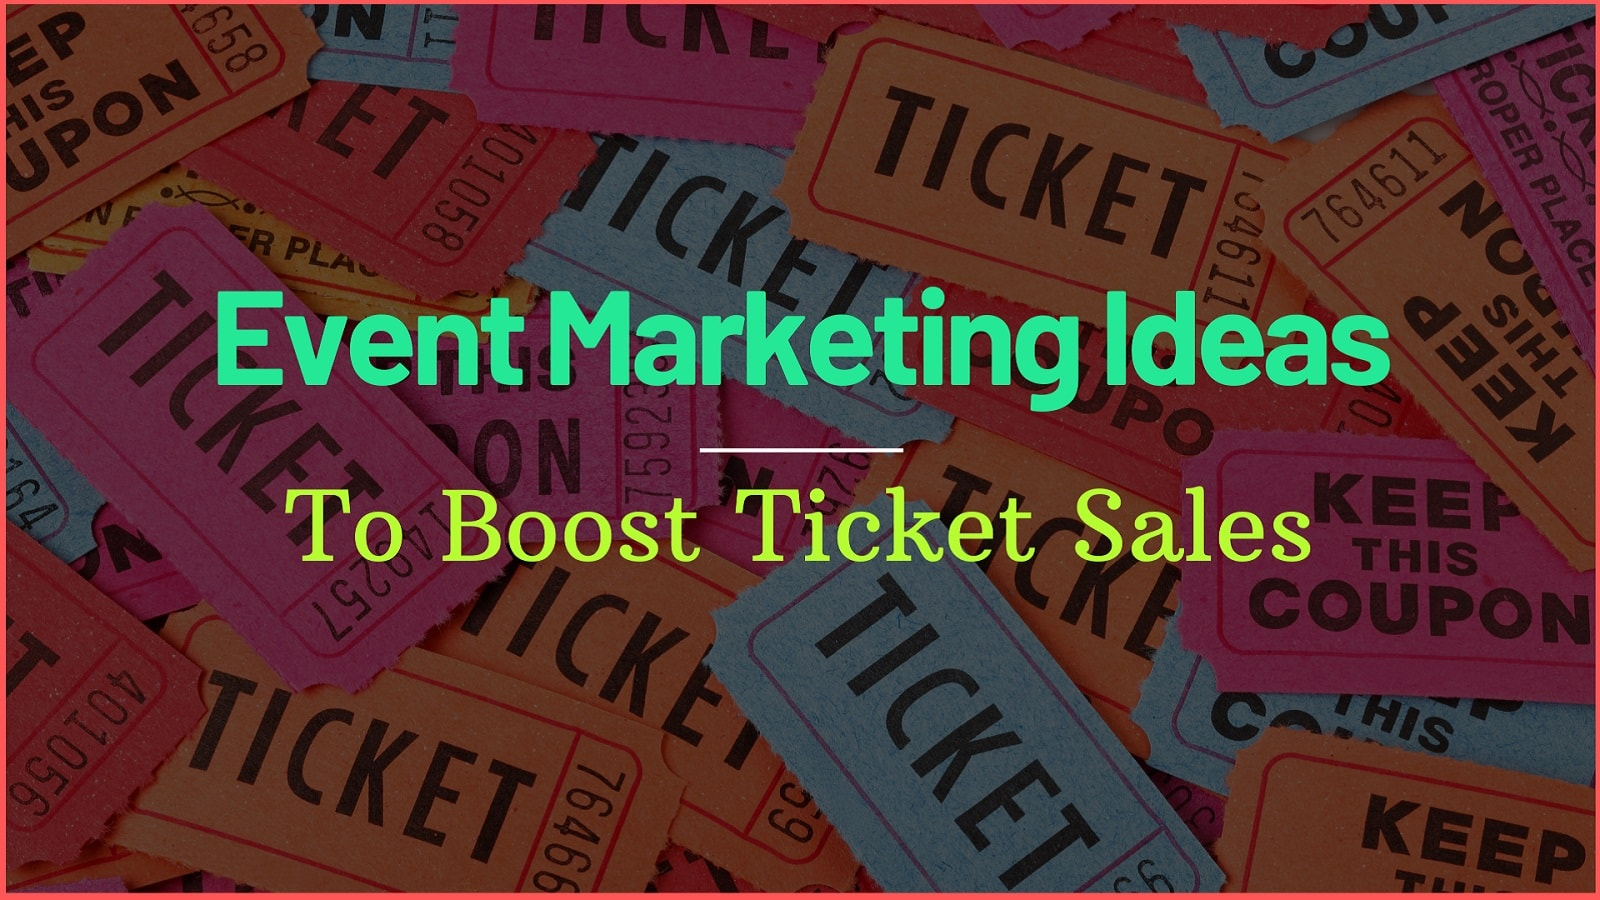 Event marketing ideas to boost ticket sales - EventBookings